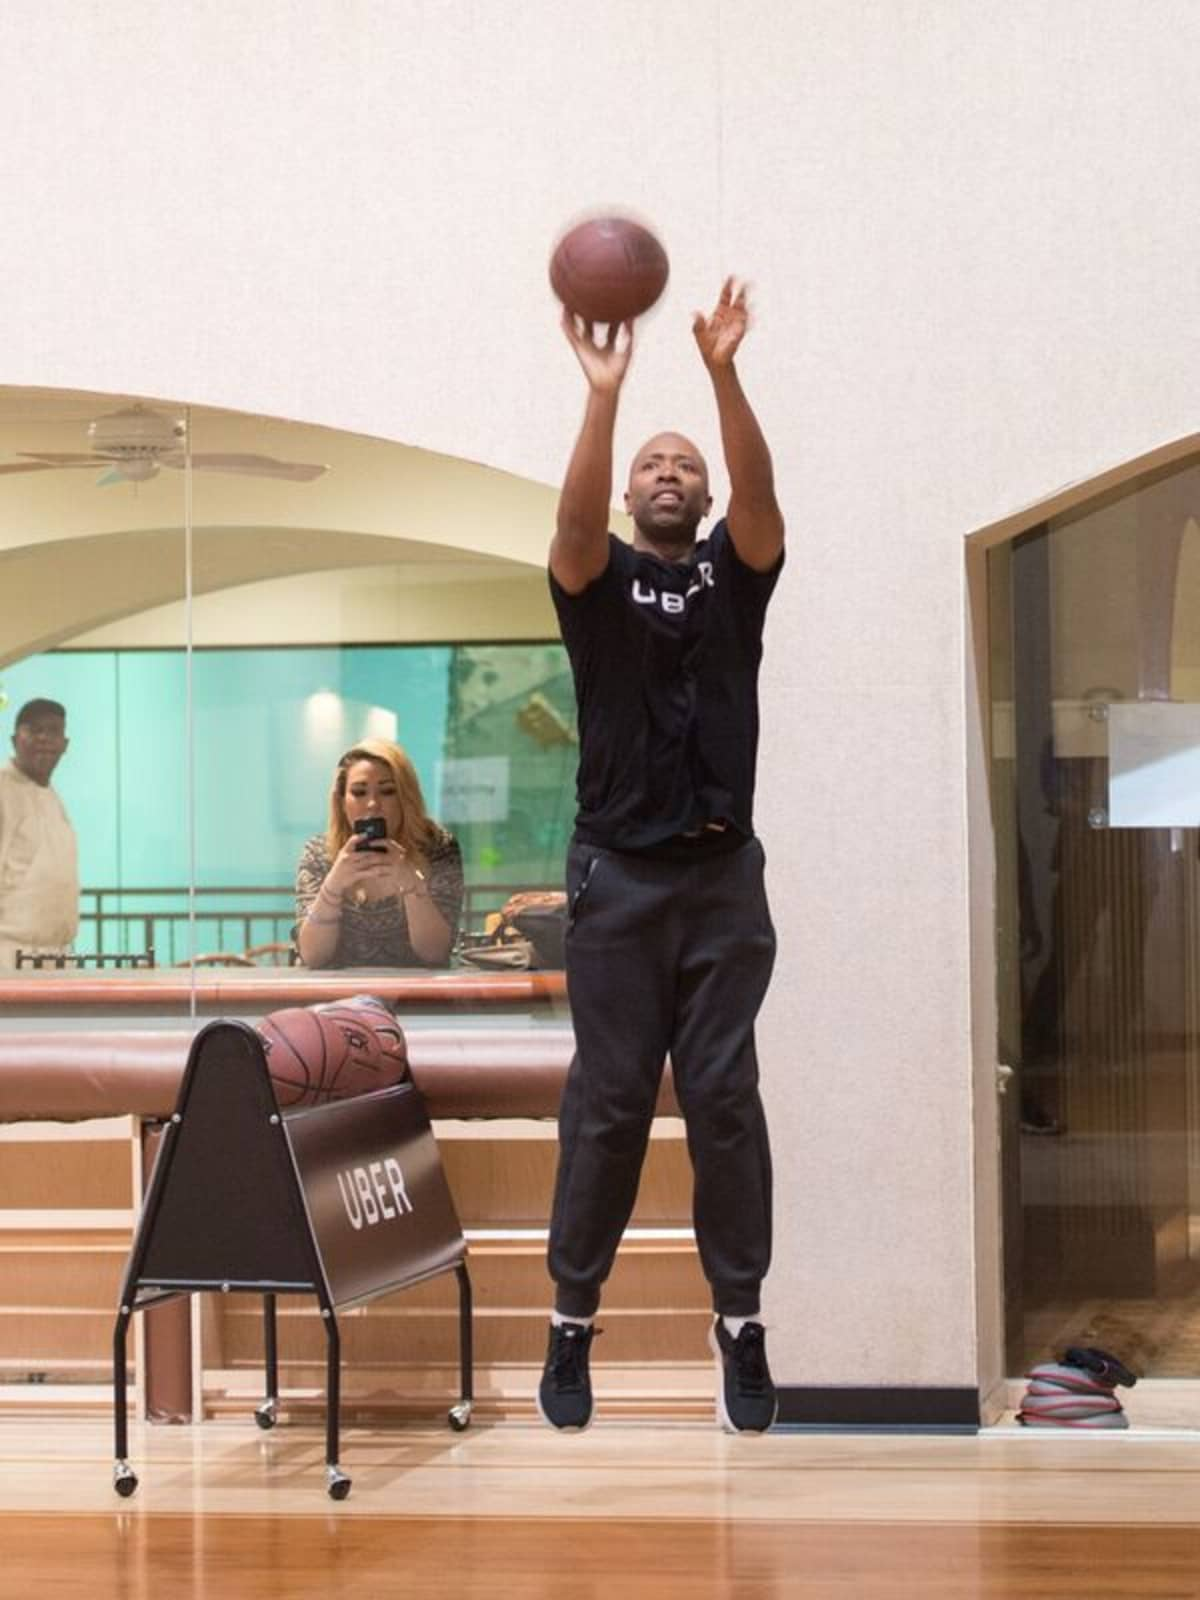 Kenny Smith at 3 point challenge at Houstonian